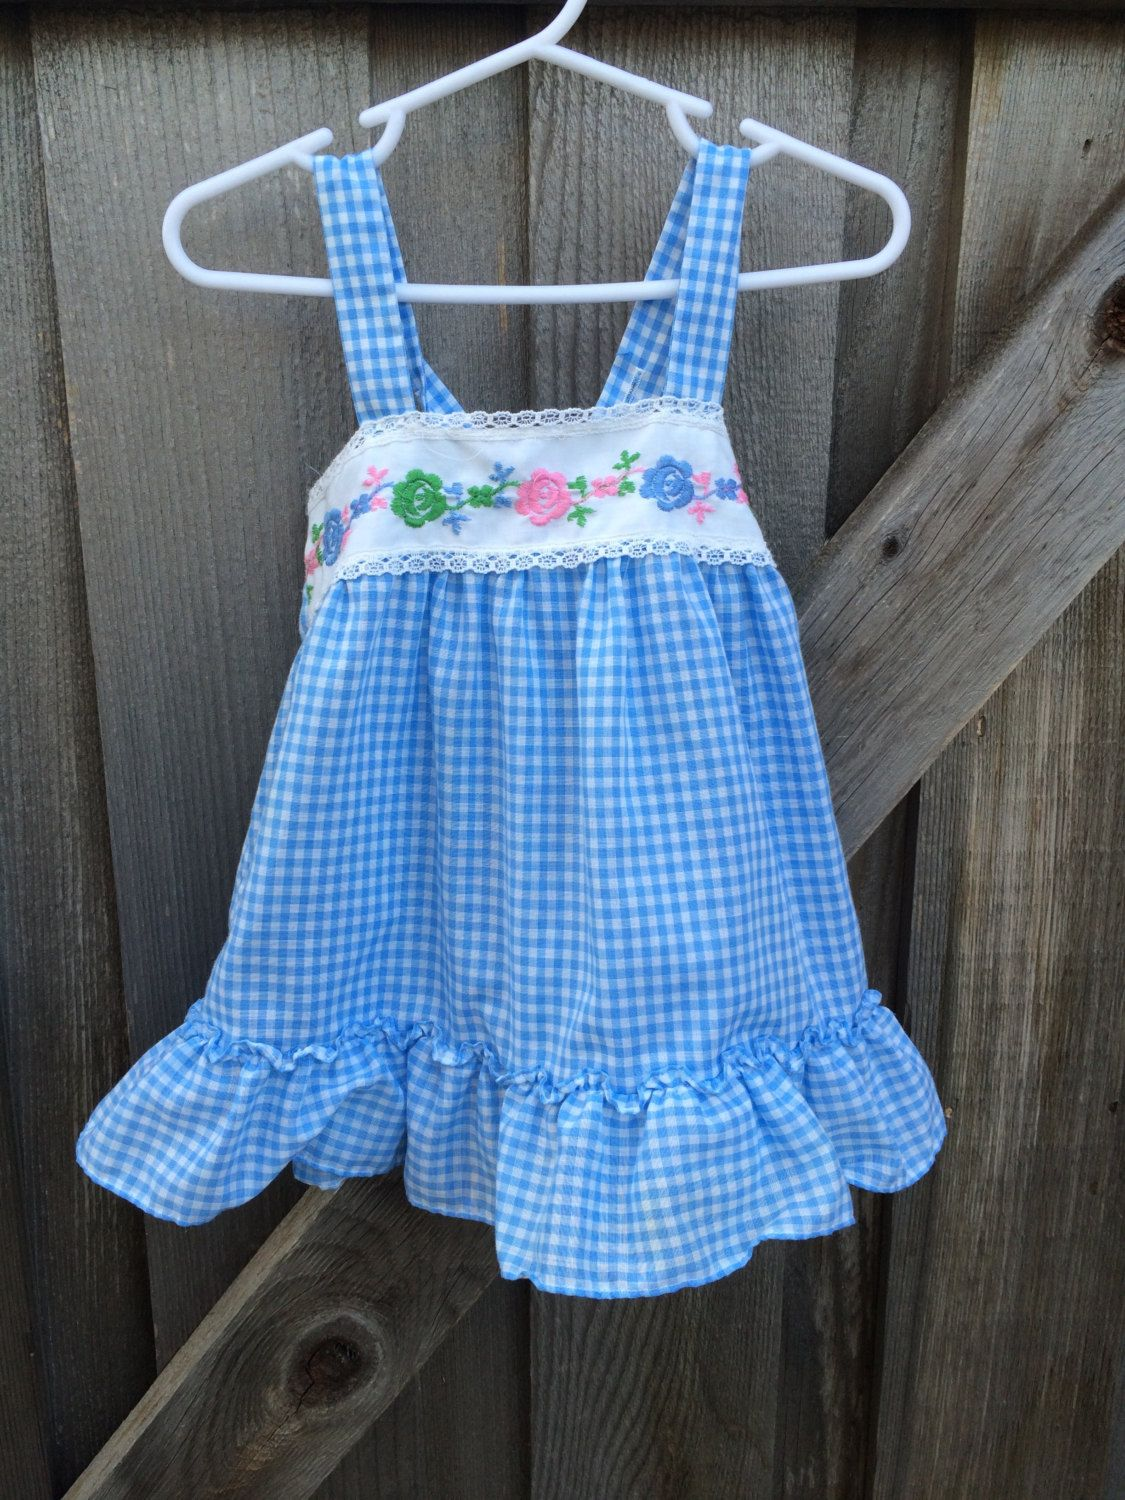 70s Blue Gingham Dress 2T/Toddlers 2 by lishyloo on Etsy